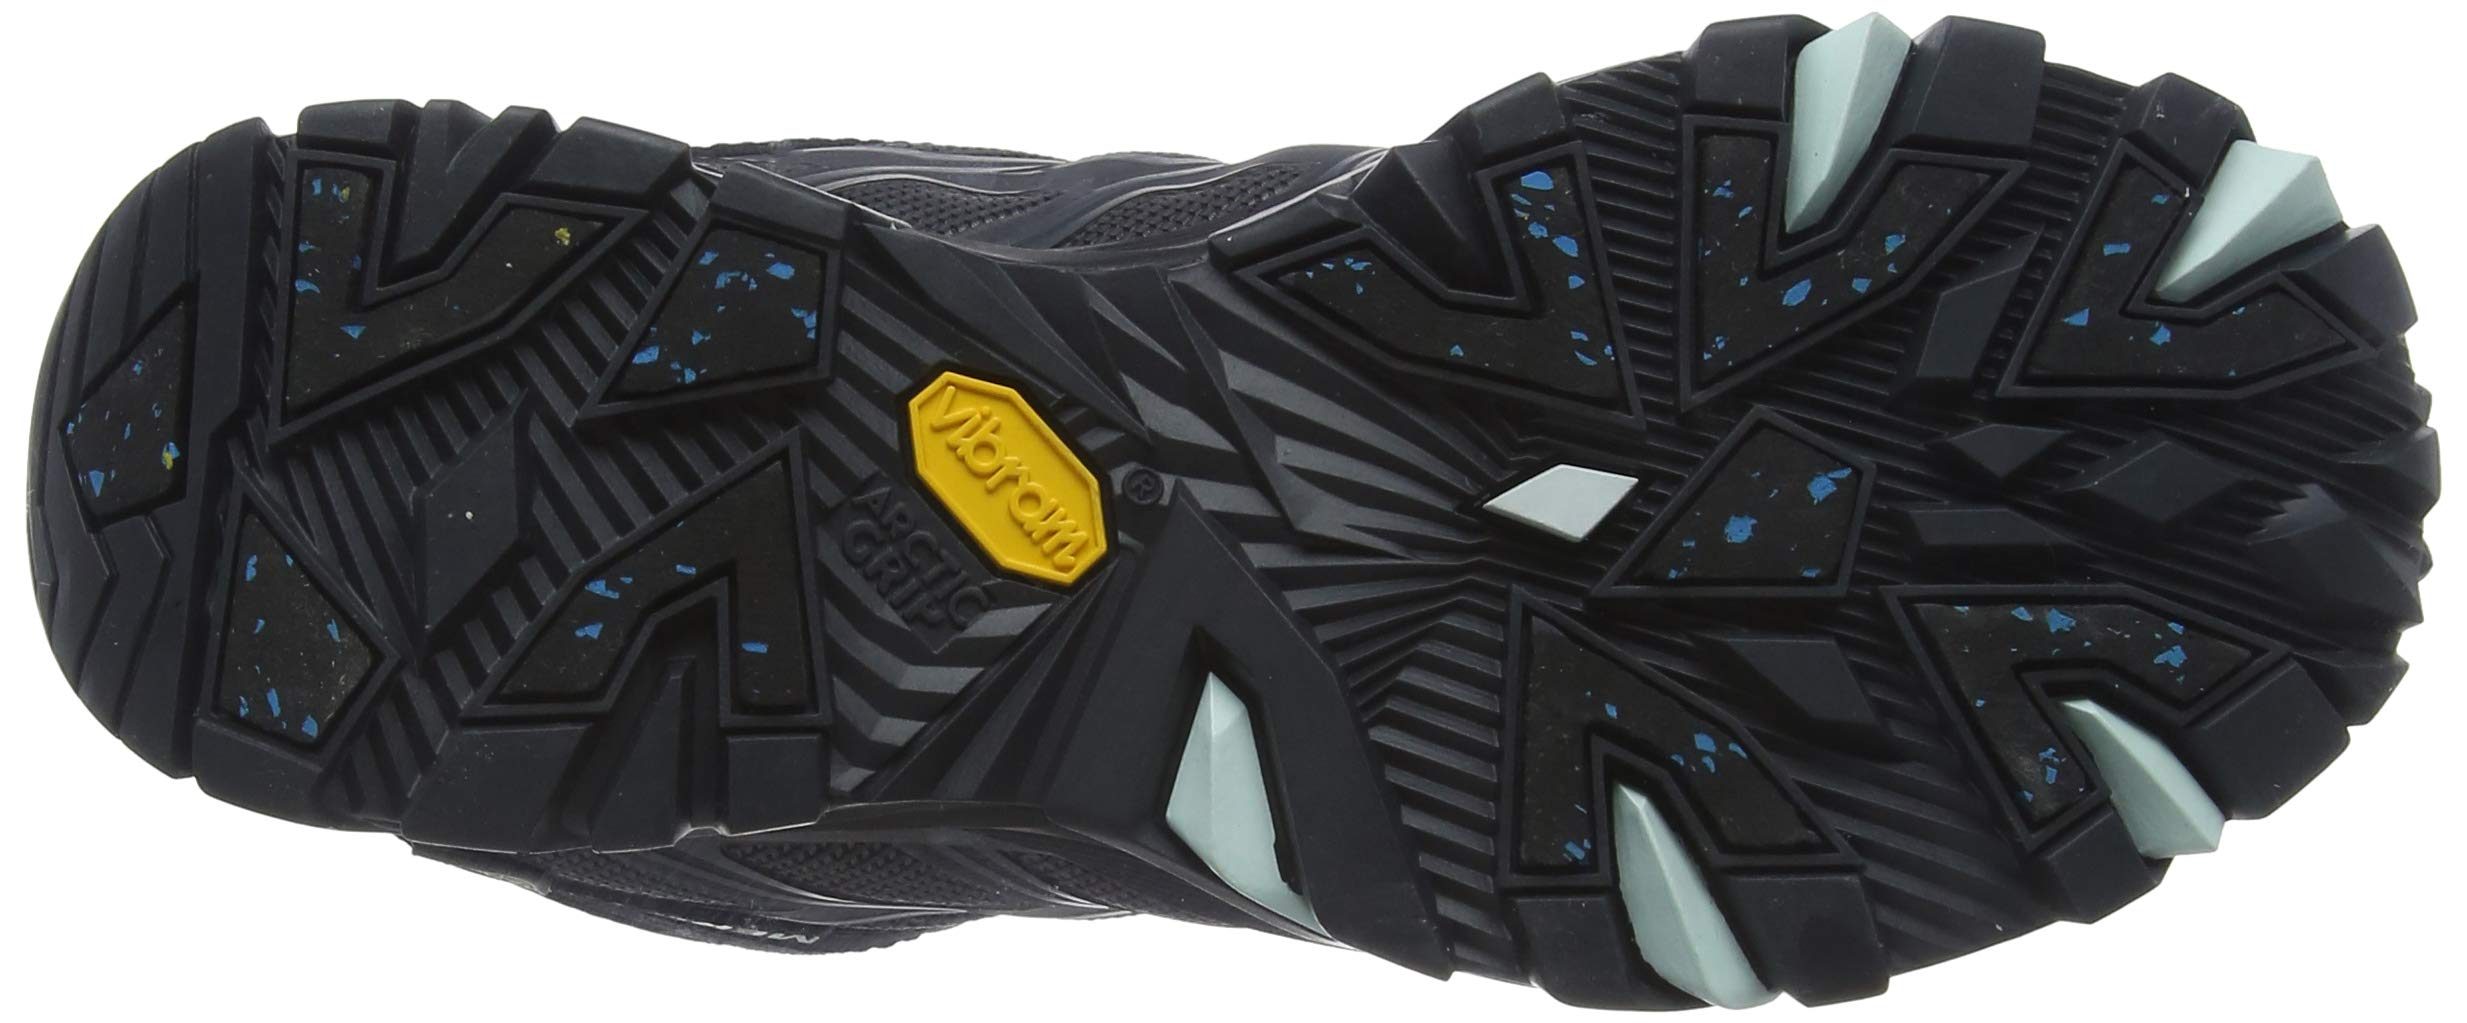 71OjauKUFxL - Merrell Women's Moab FST Ice+ Thermo High Rise Hiking Boots